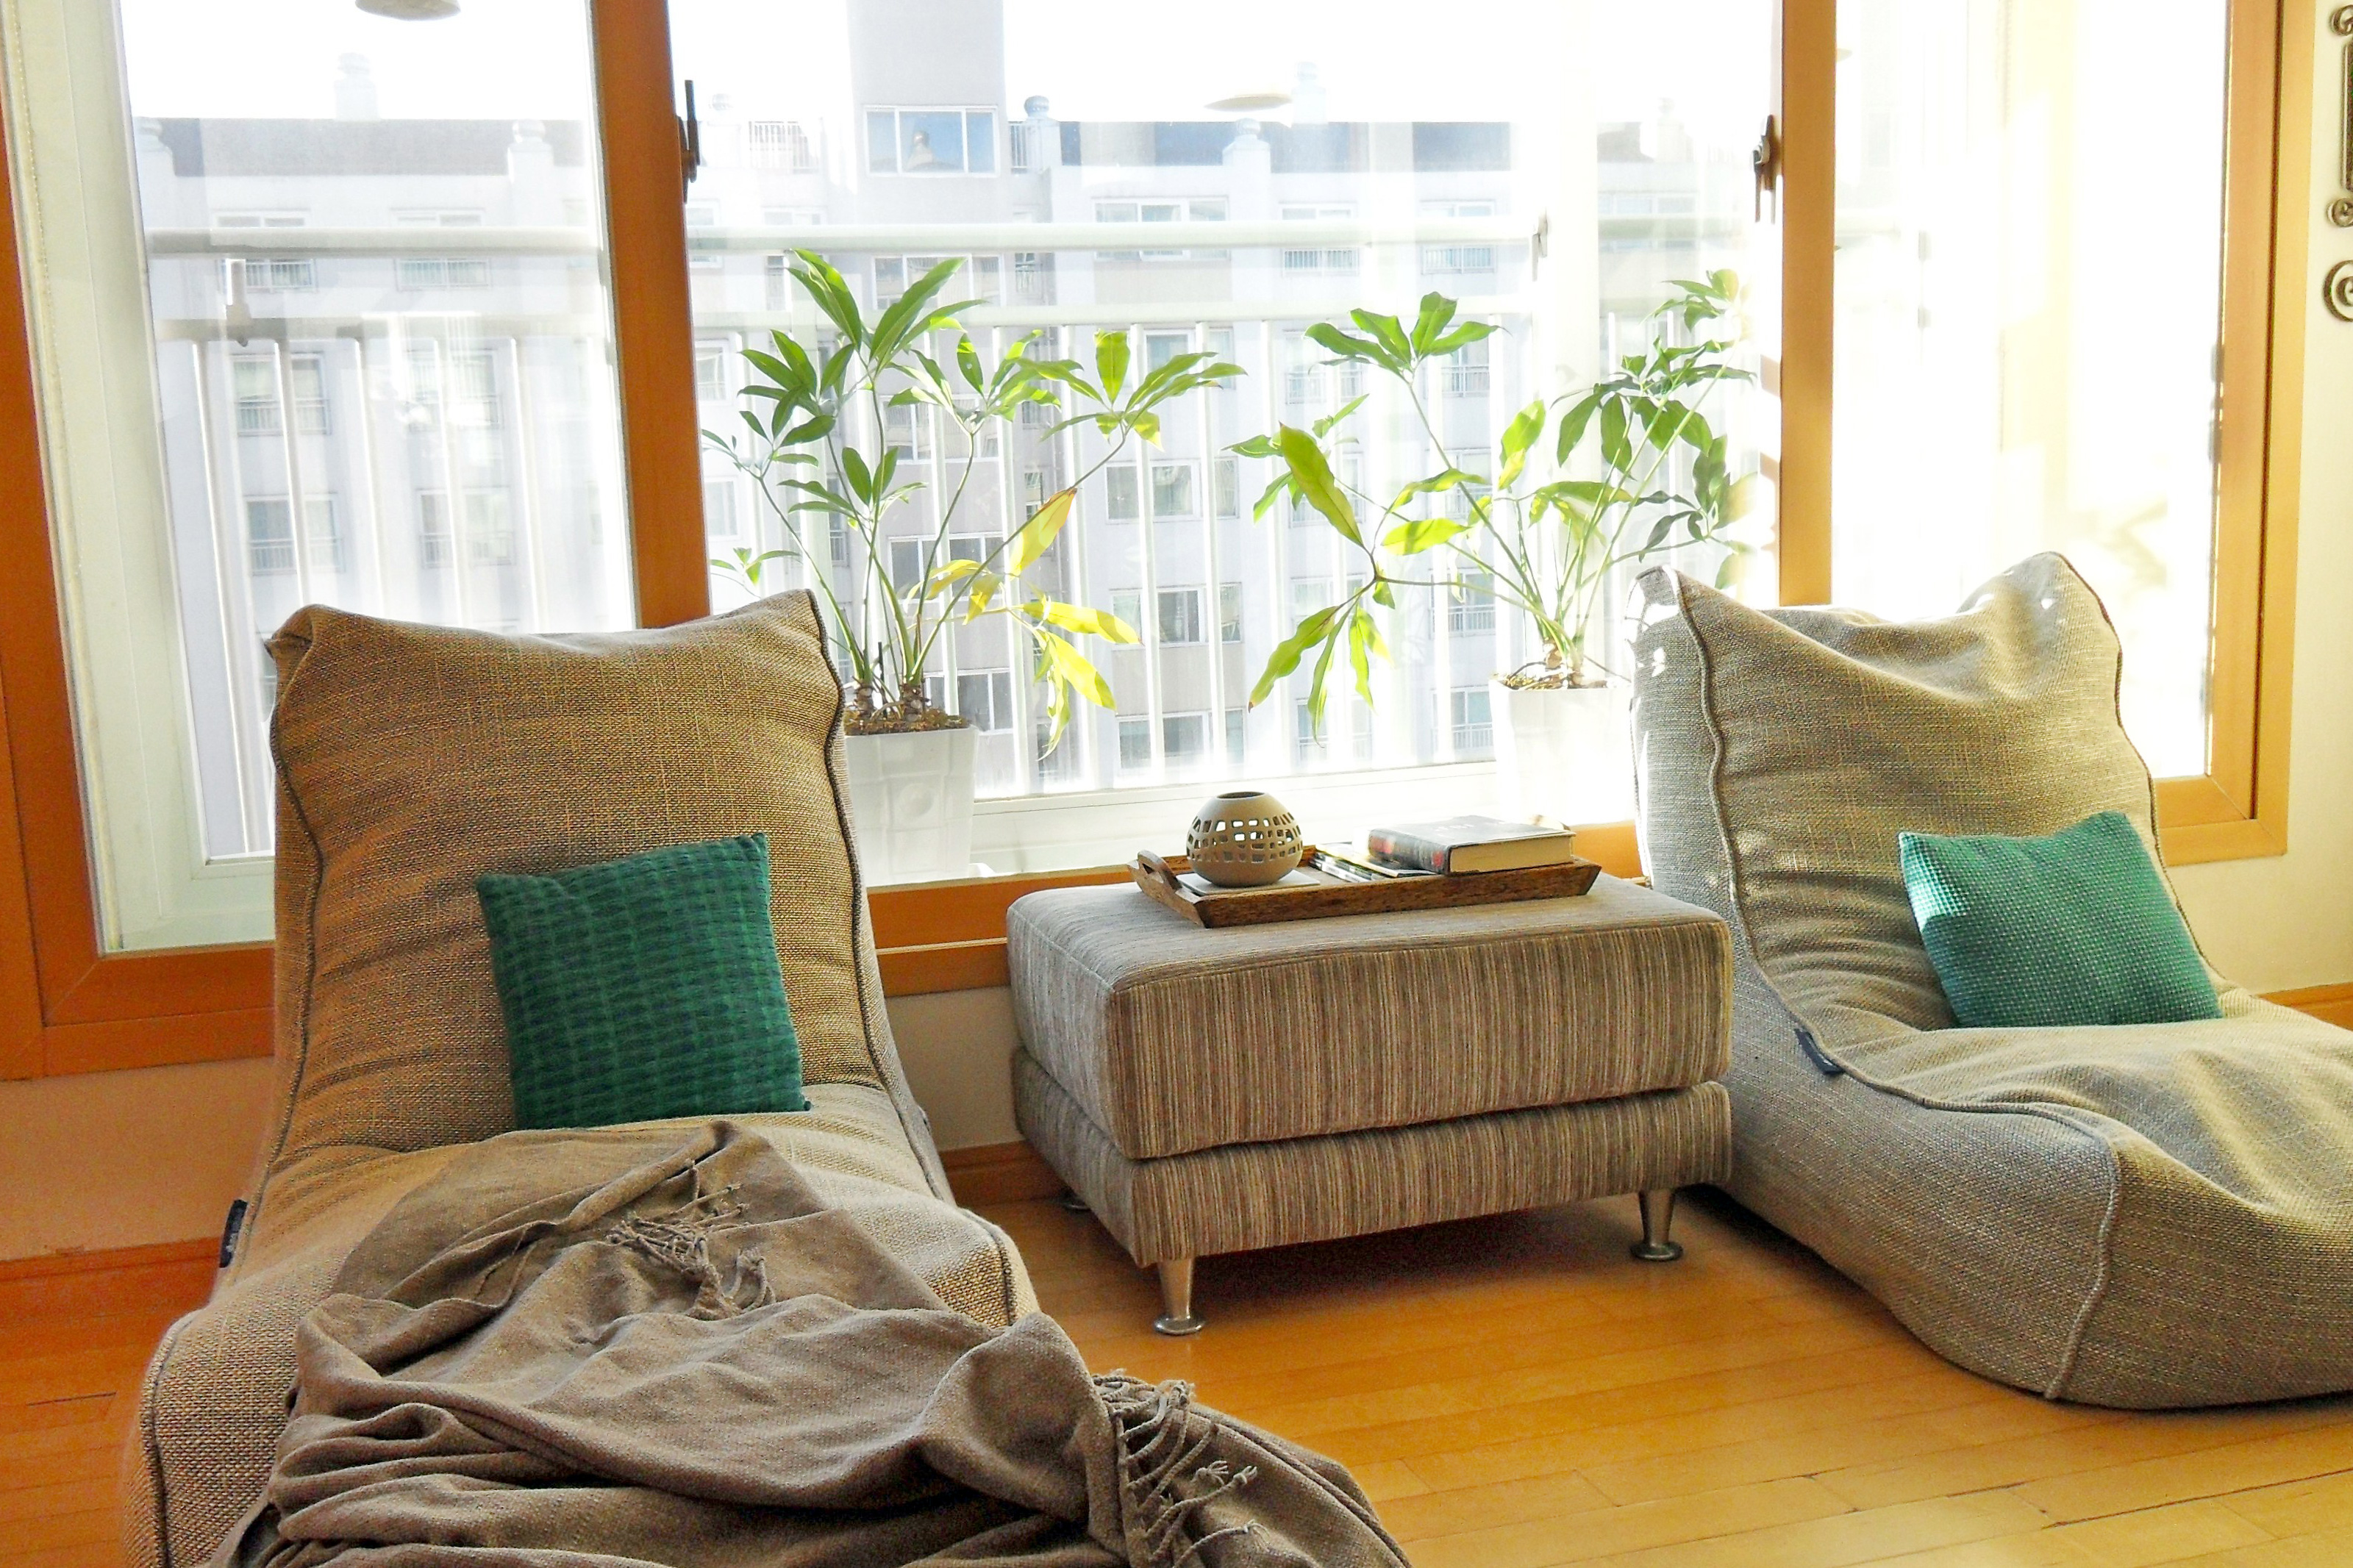 Comfortable chairs in front of a window in an apartment